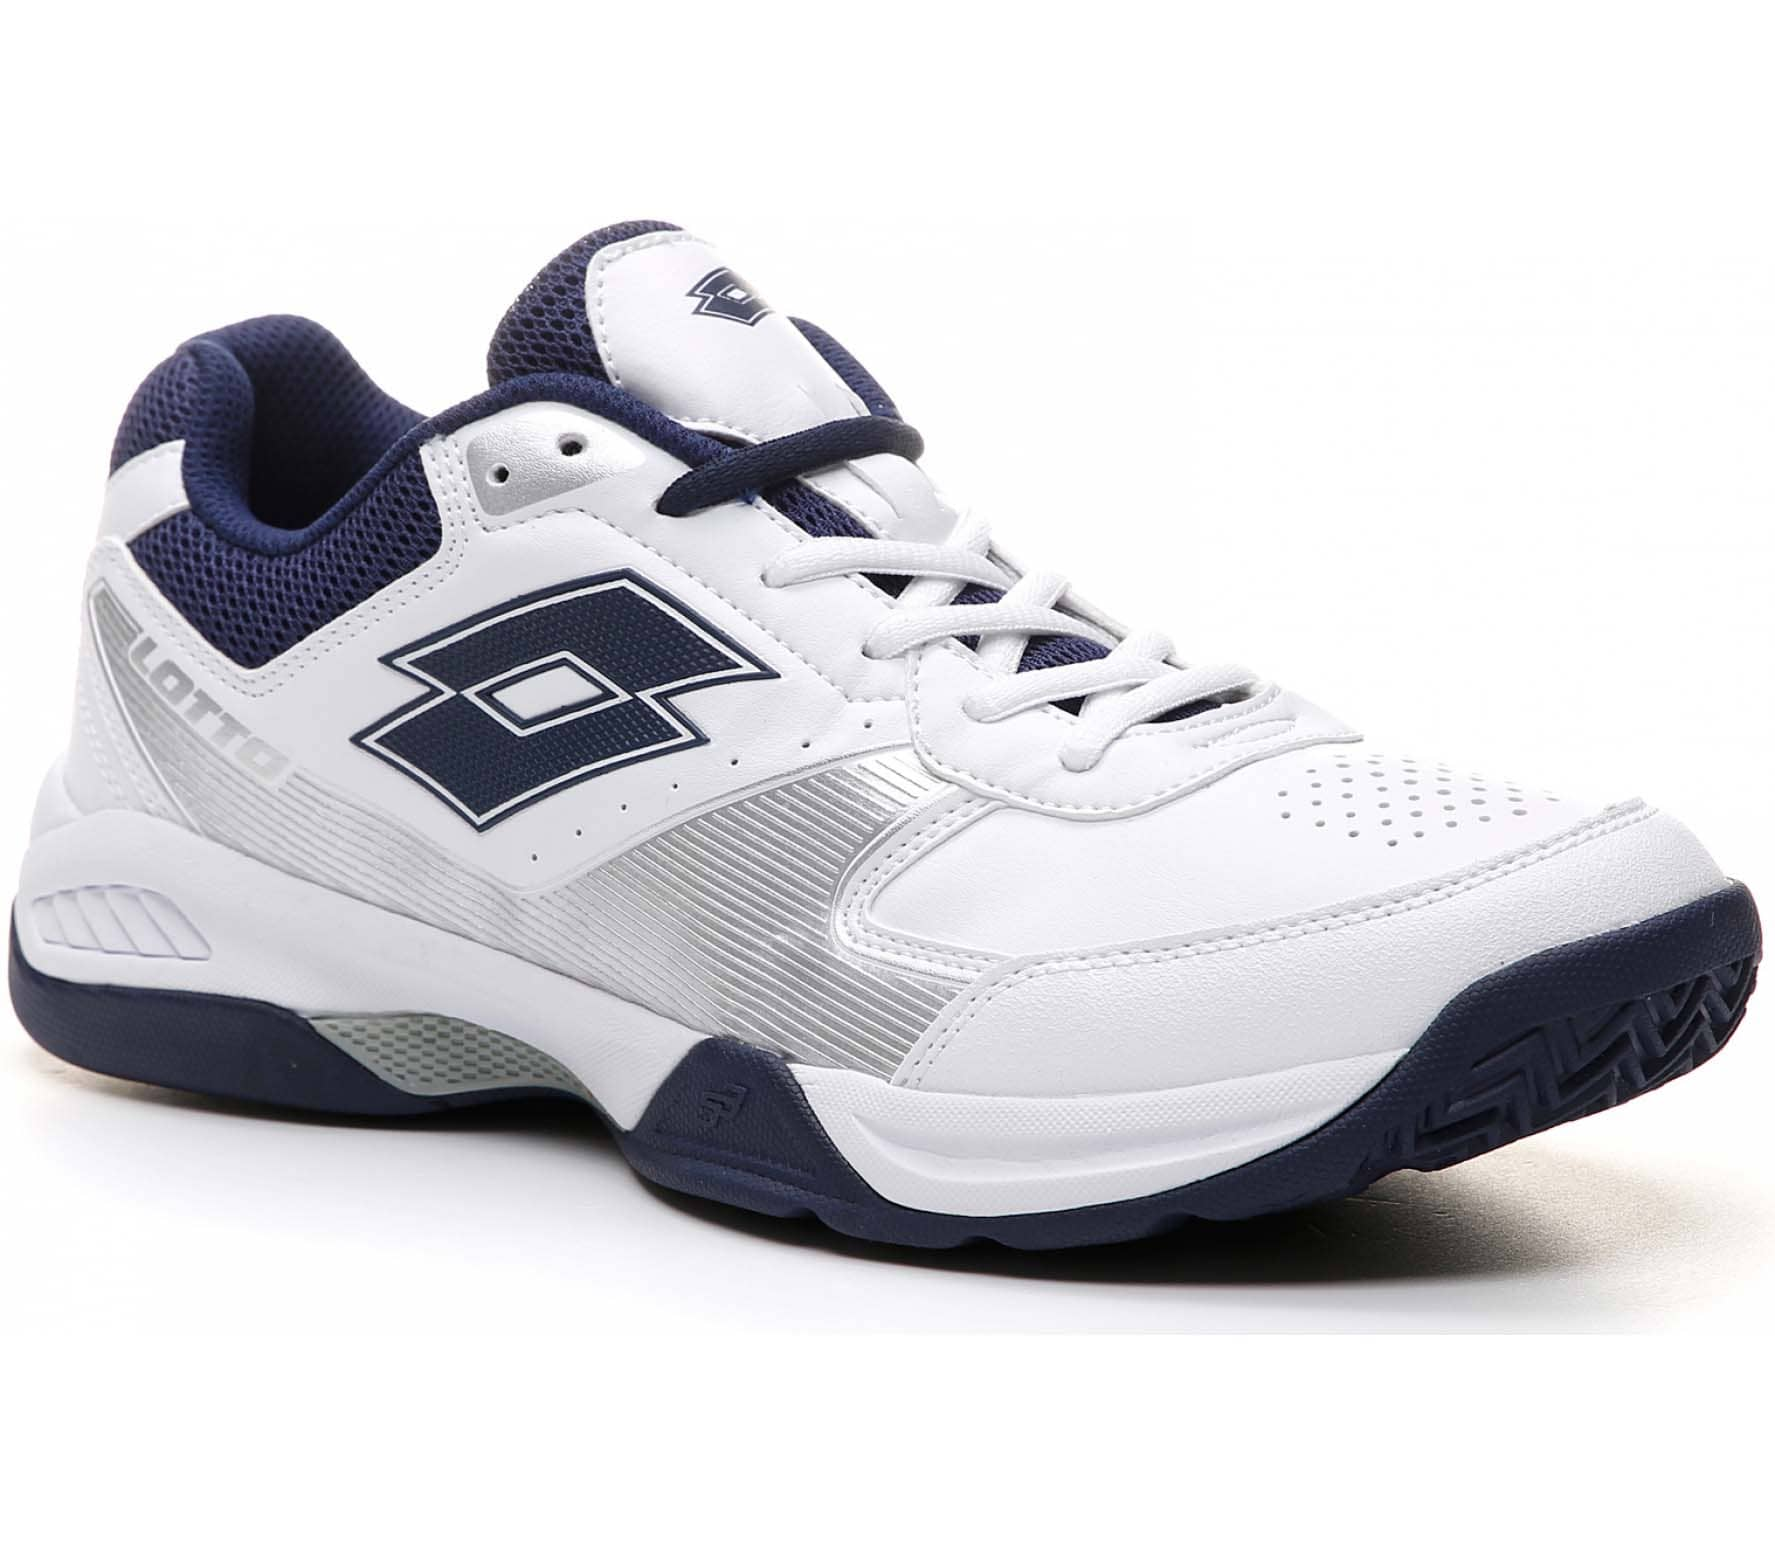 Lotto Space 600 All Round Men Tennis Shoes white